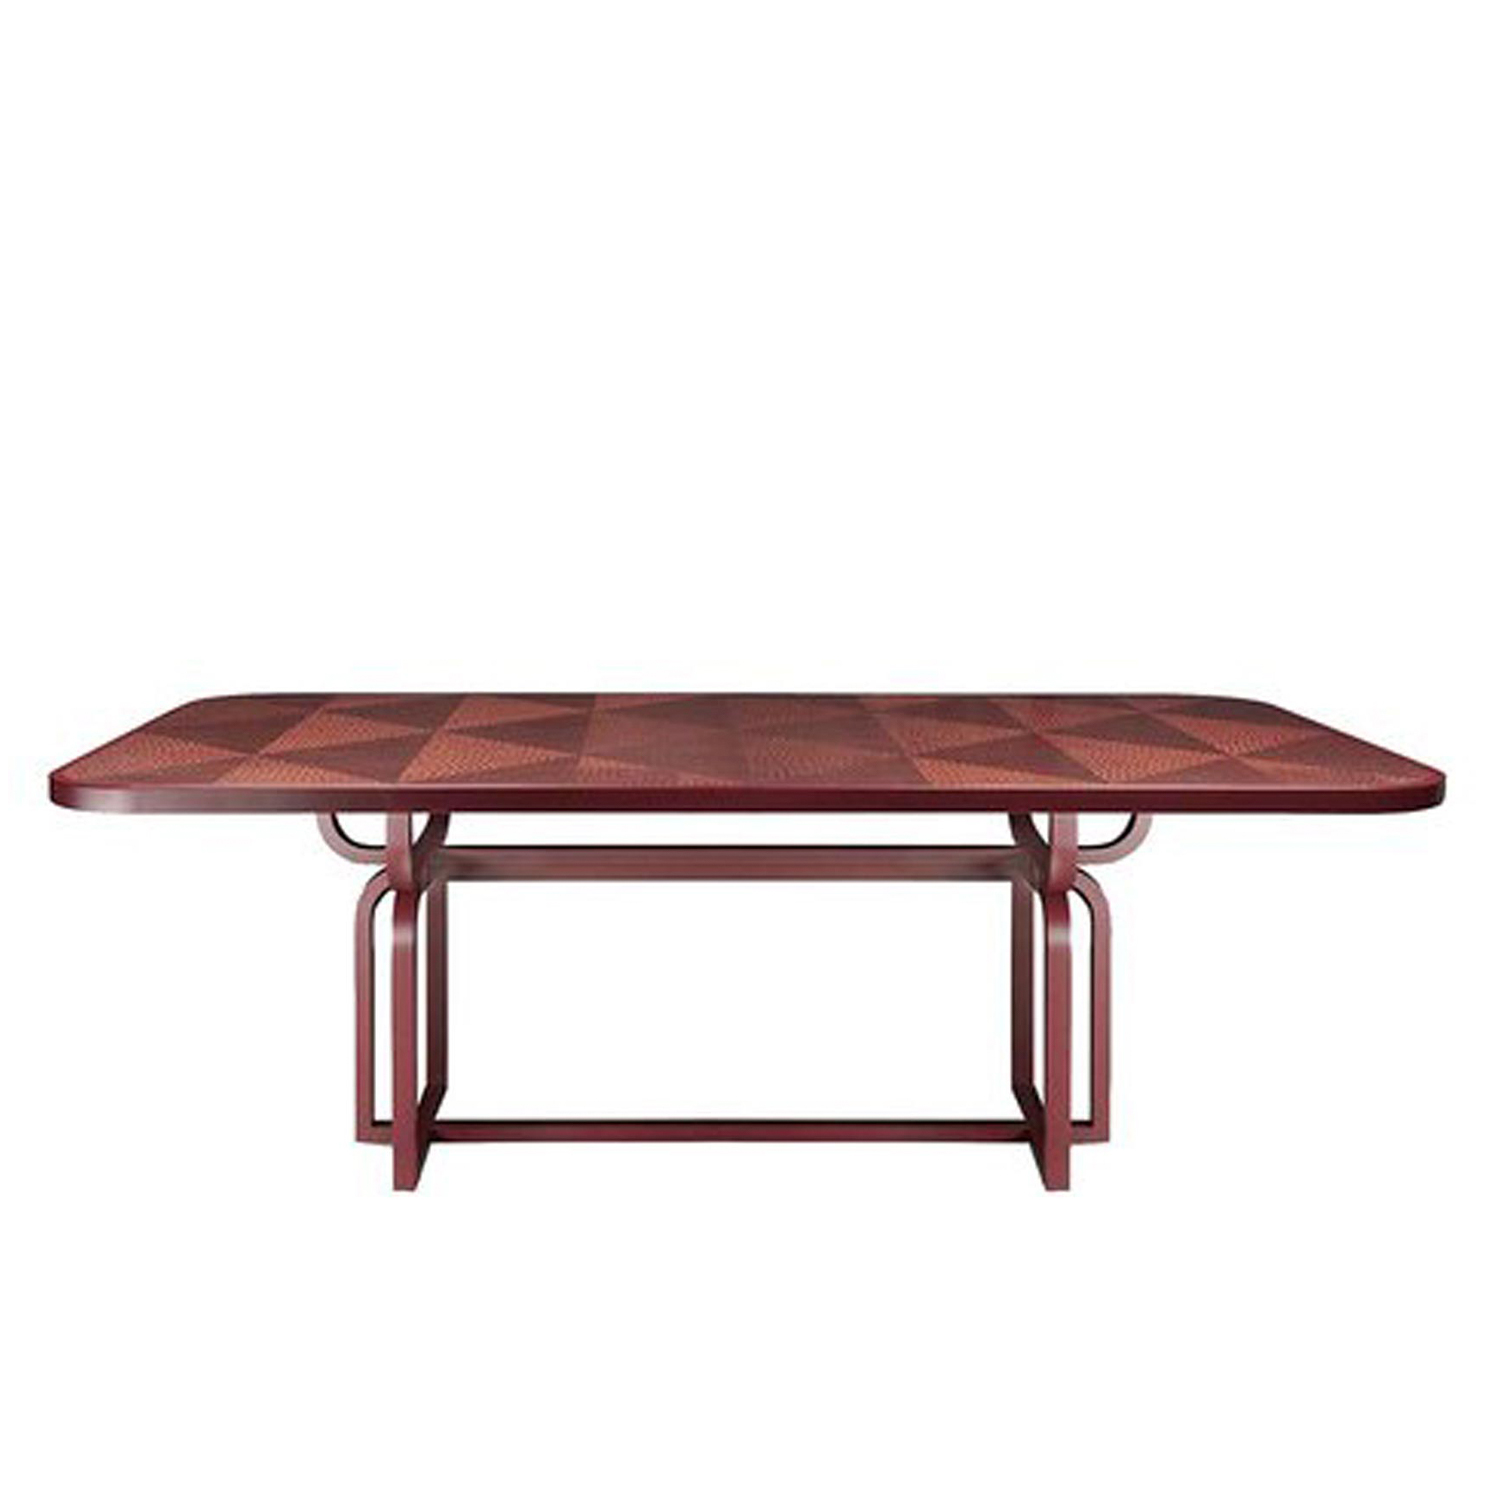 Caryllon Dining Table - The retro allure of this piece is conveyed by the square section of the structure, in striking contrast with the rich decorative treatment of its surface, the round corners at the top, and curved base. The top is adorned with a handcrafted straw inlay inspired by straw marquetry and tinted in vivid red, as in the Art Deco style. A homage to Michael Thonet, this solid wood table is available in two different heights.